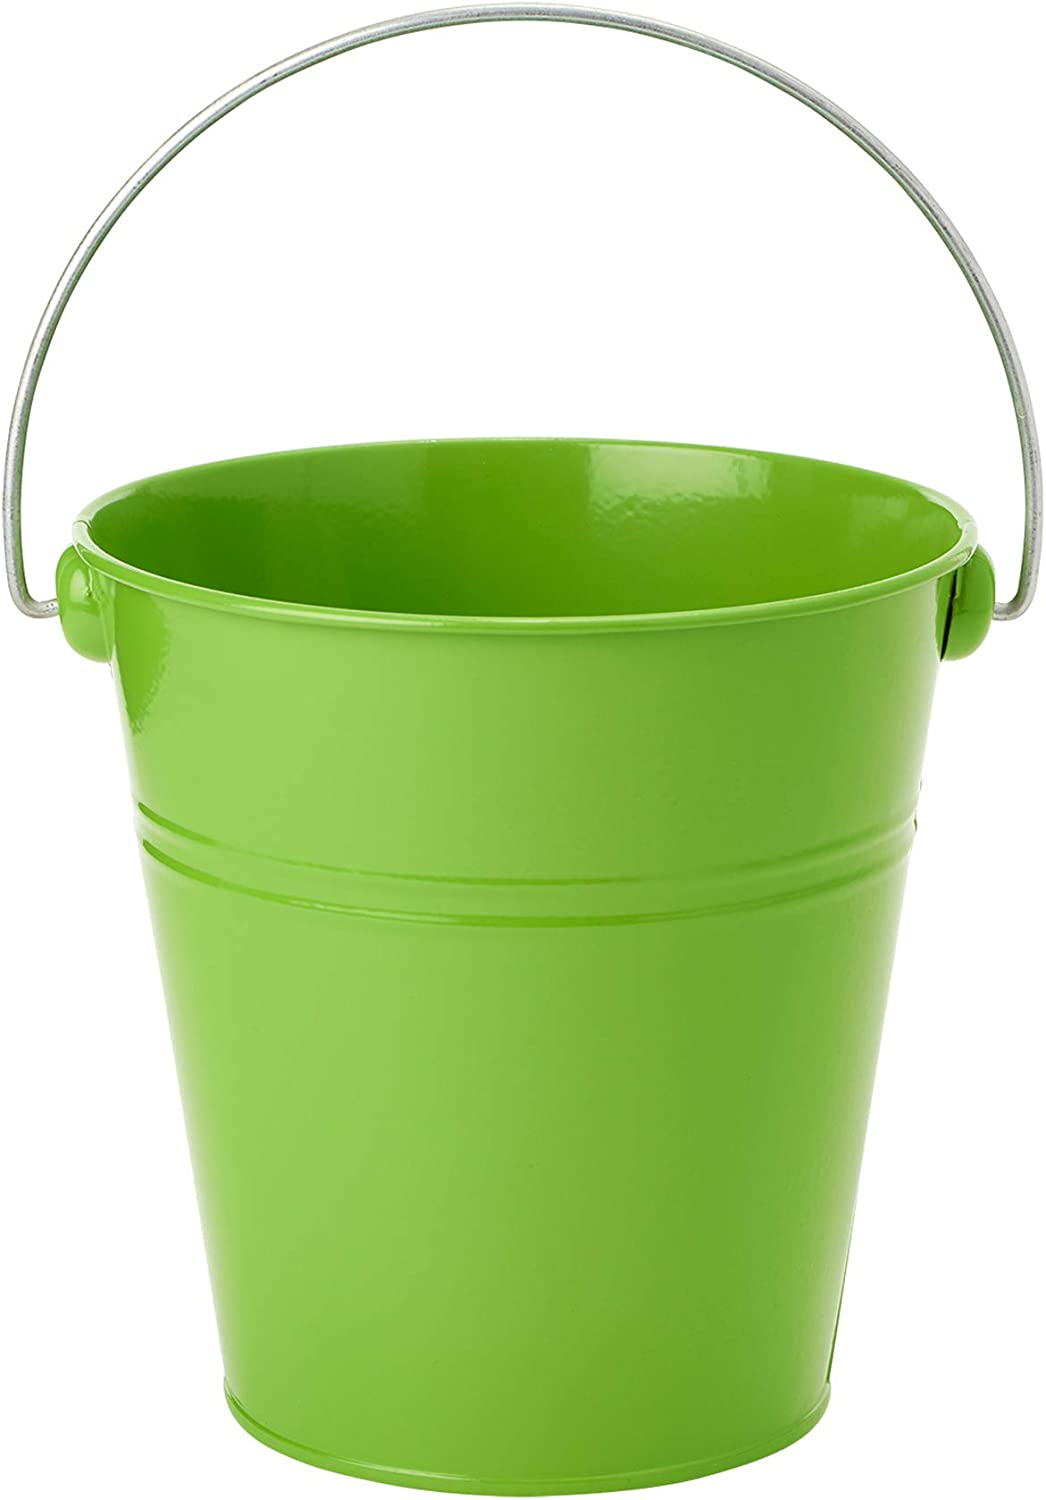 Simply Elegant (12 Pack) Decorative Color Metal Bucket with Handles (6